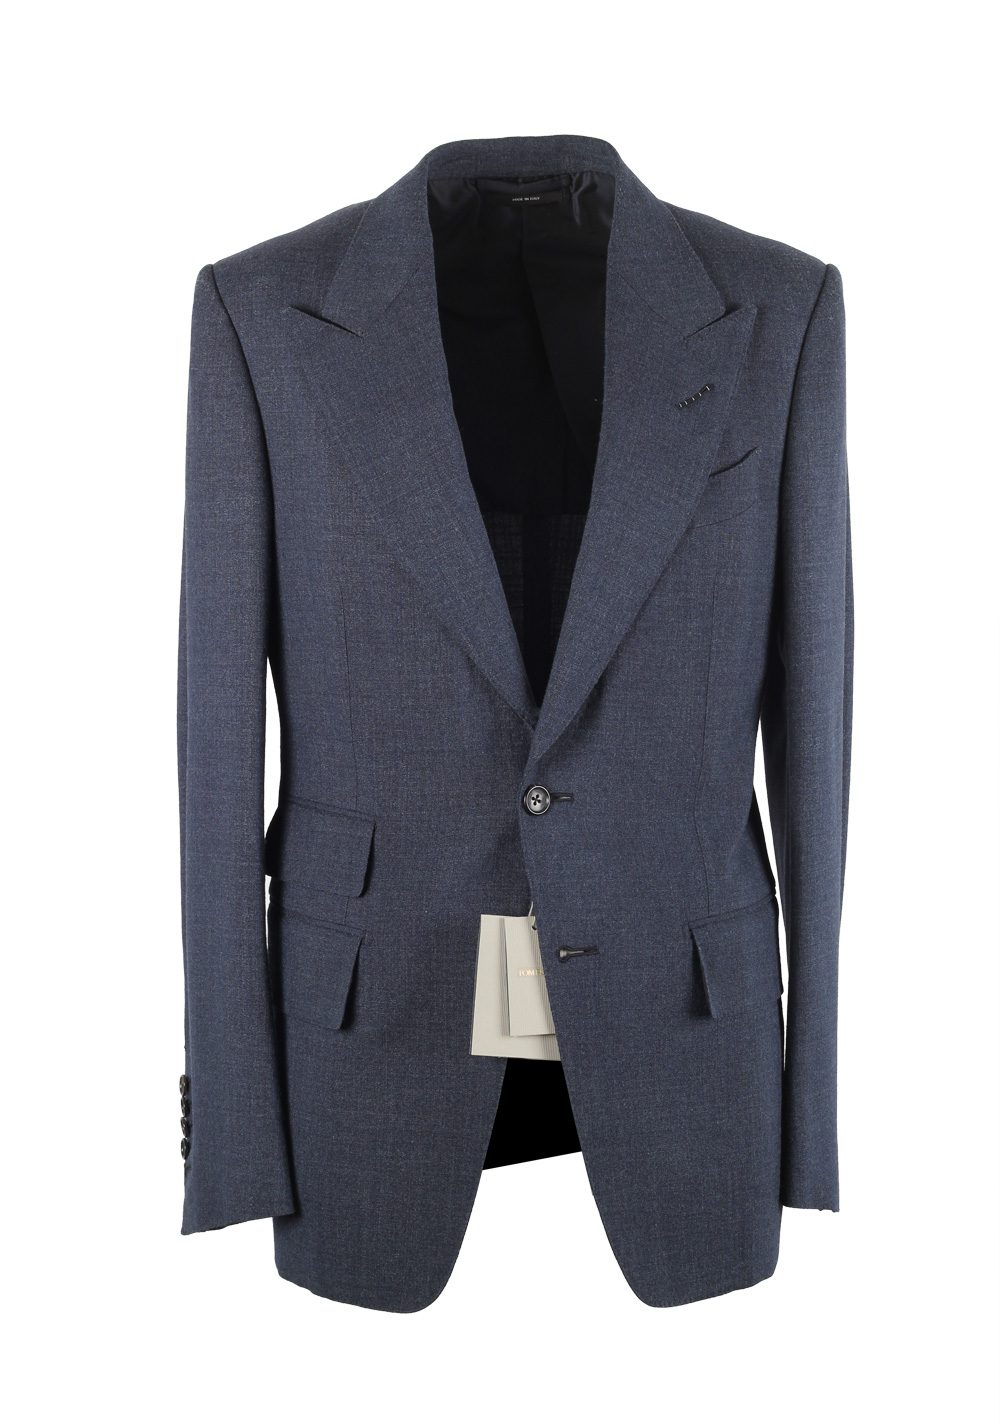 TOM FORD Shelton Blue Suit Size 46 / 36R U.S. In Wool Silk | Costume Limité